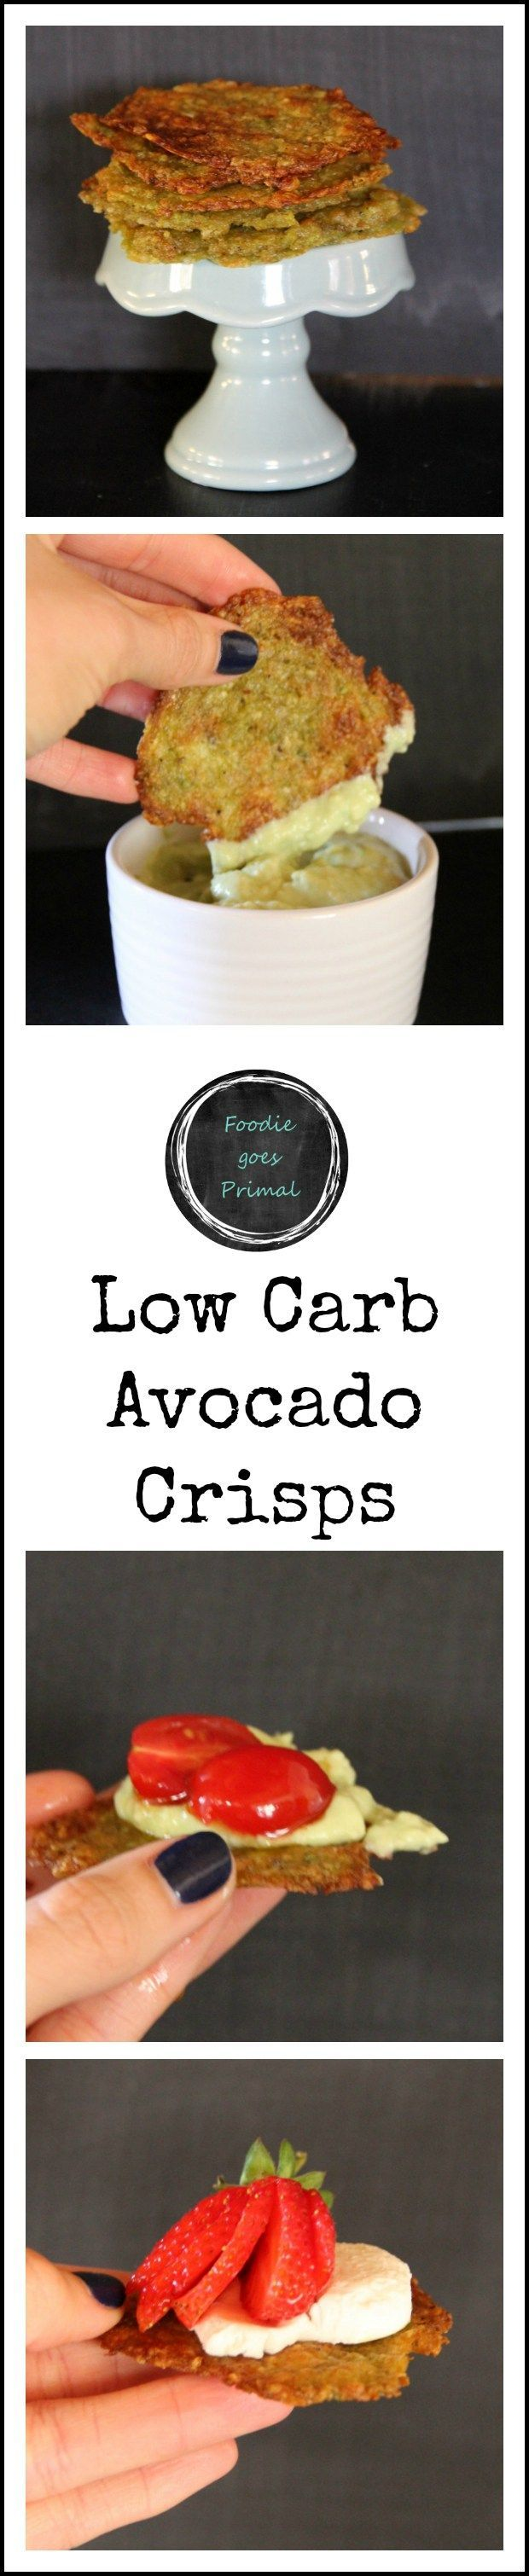 Low Carb Avocado Crisps - Ingr Challenge Pinterest